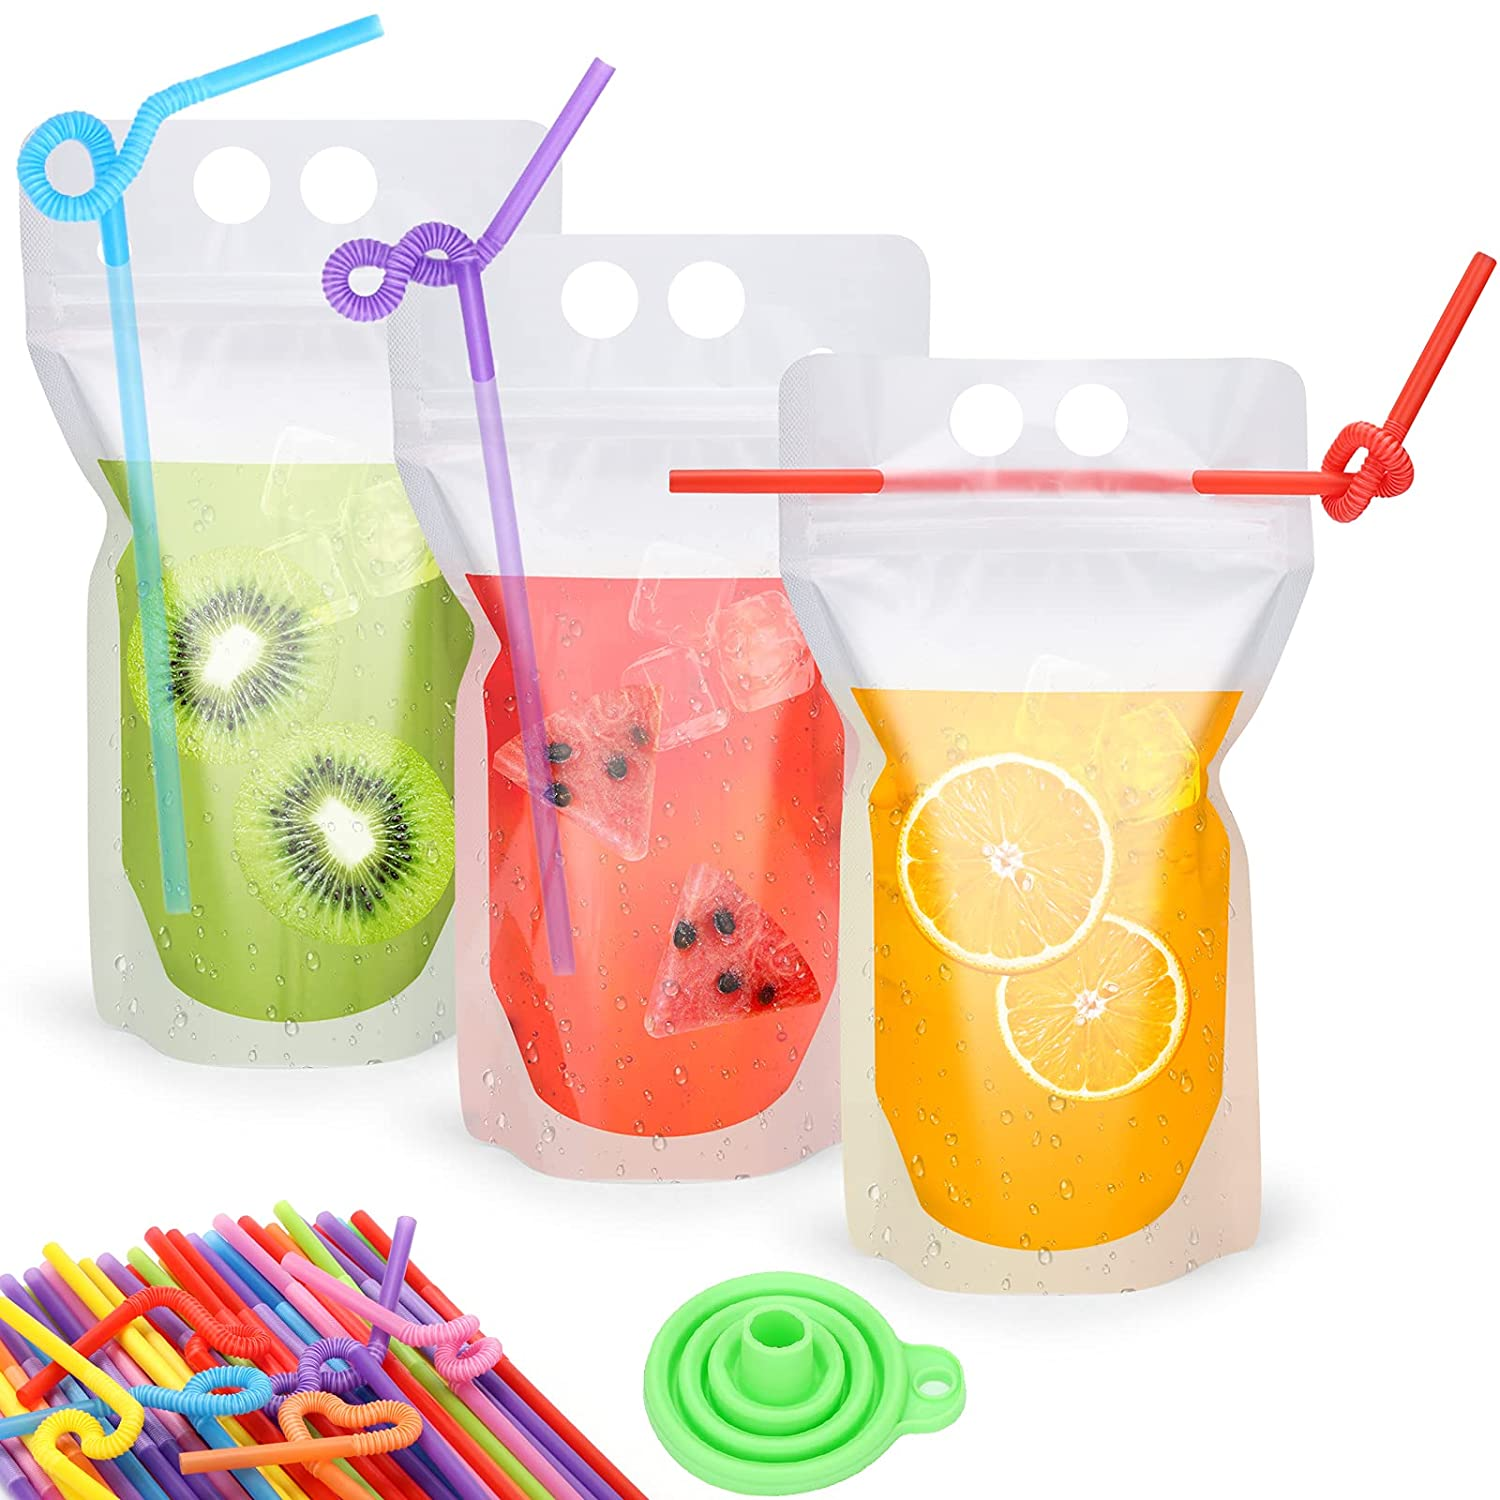 100 Pcs Drink Pouches with Straw for Adults & Kids, Reusable Frozen Juice Alcohol Cocktails Drinking Bags Heavy Duty Hand-Held Plastic Drink Containers with Funnel for Smoothie Cold Drinks